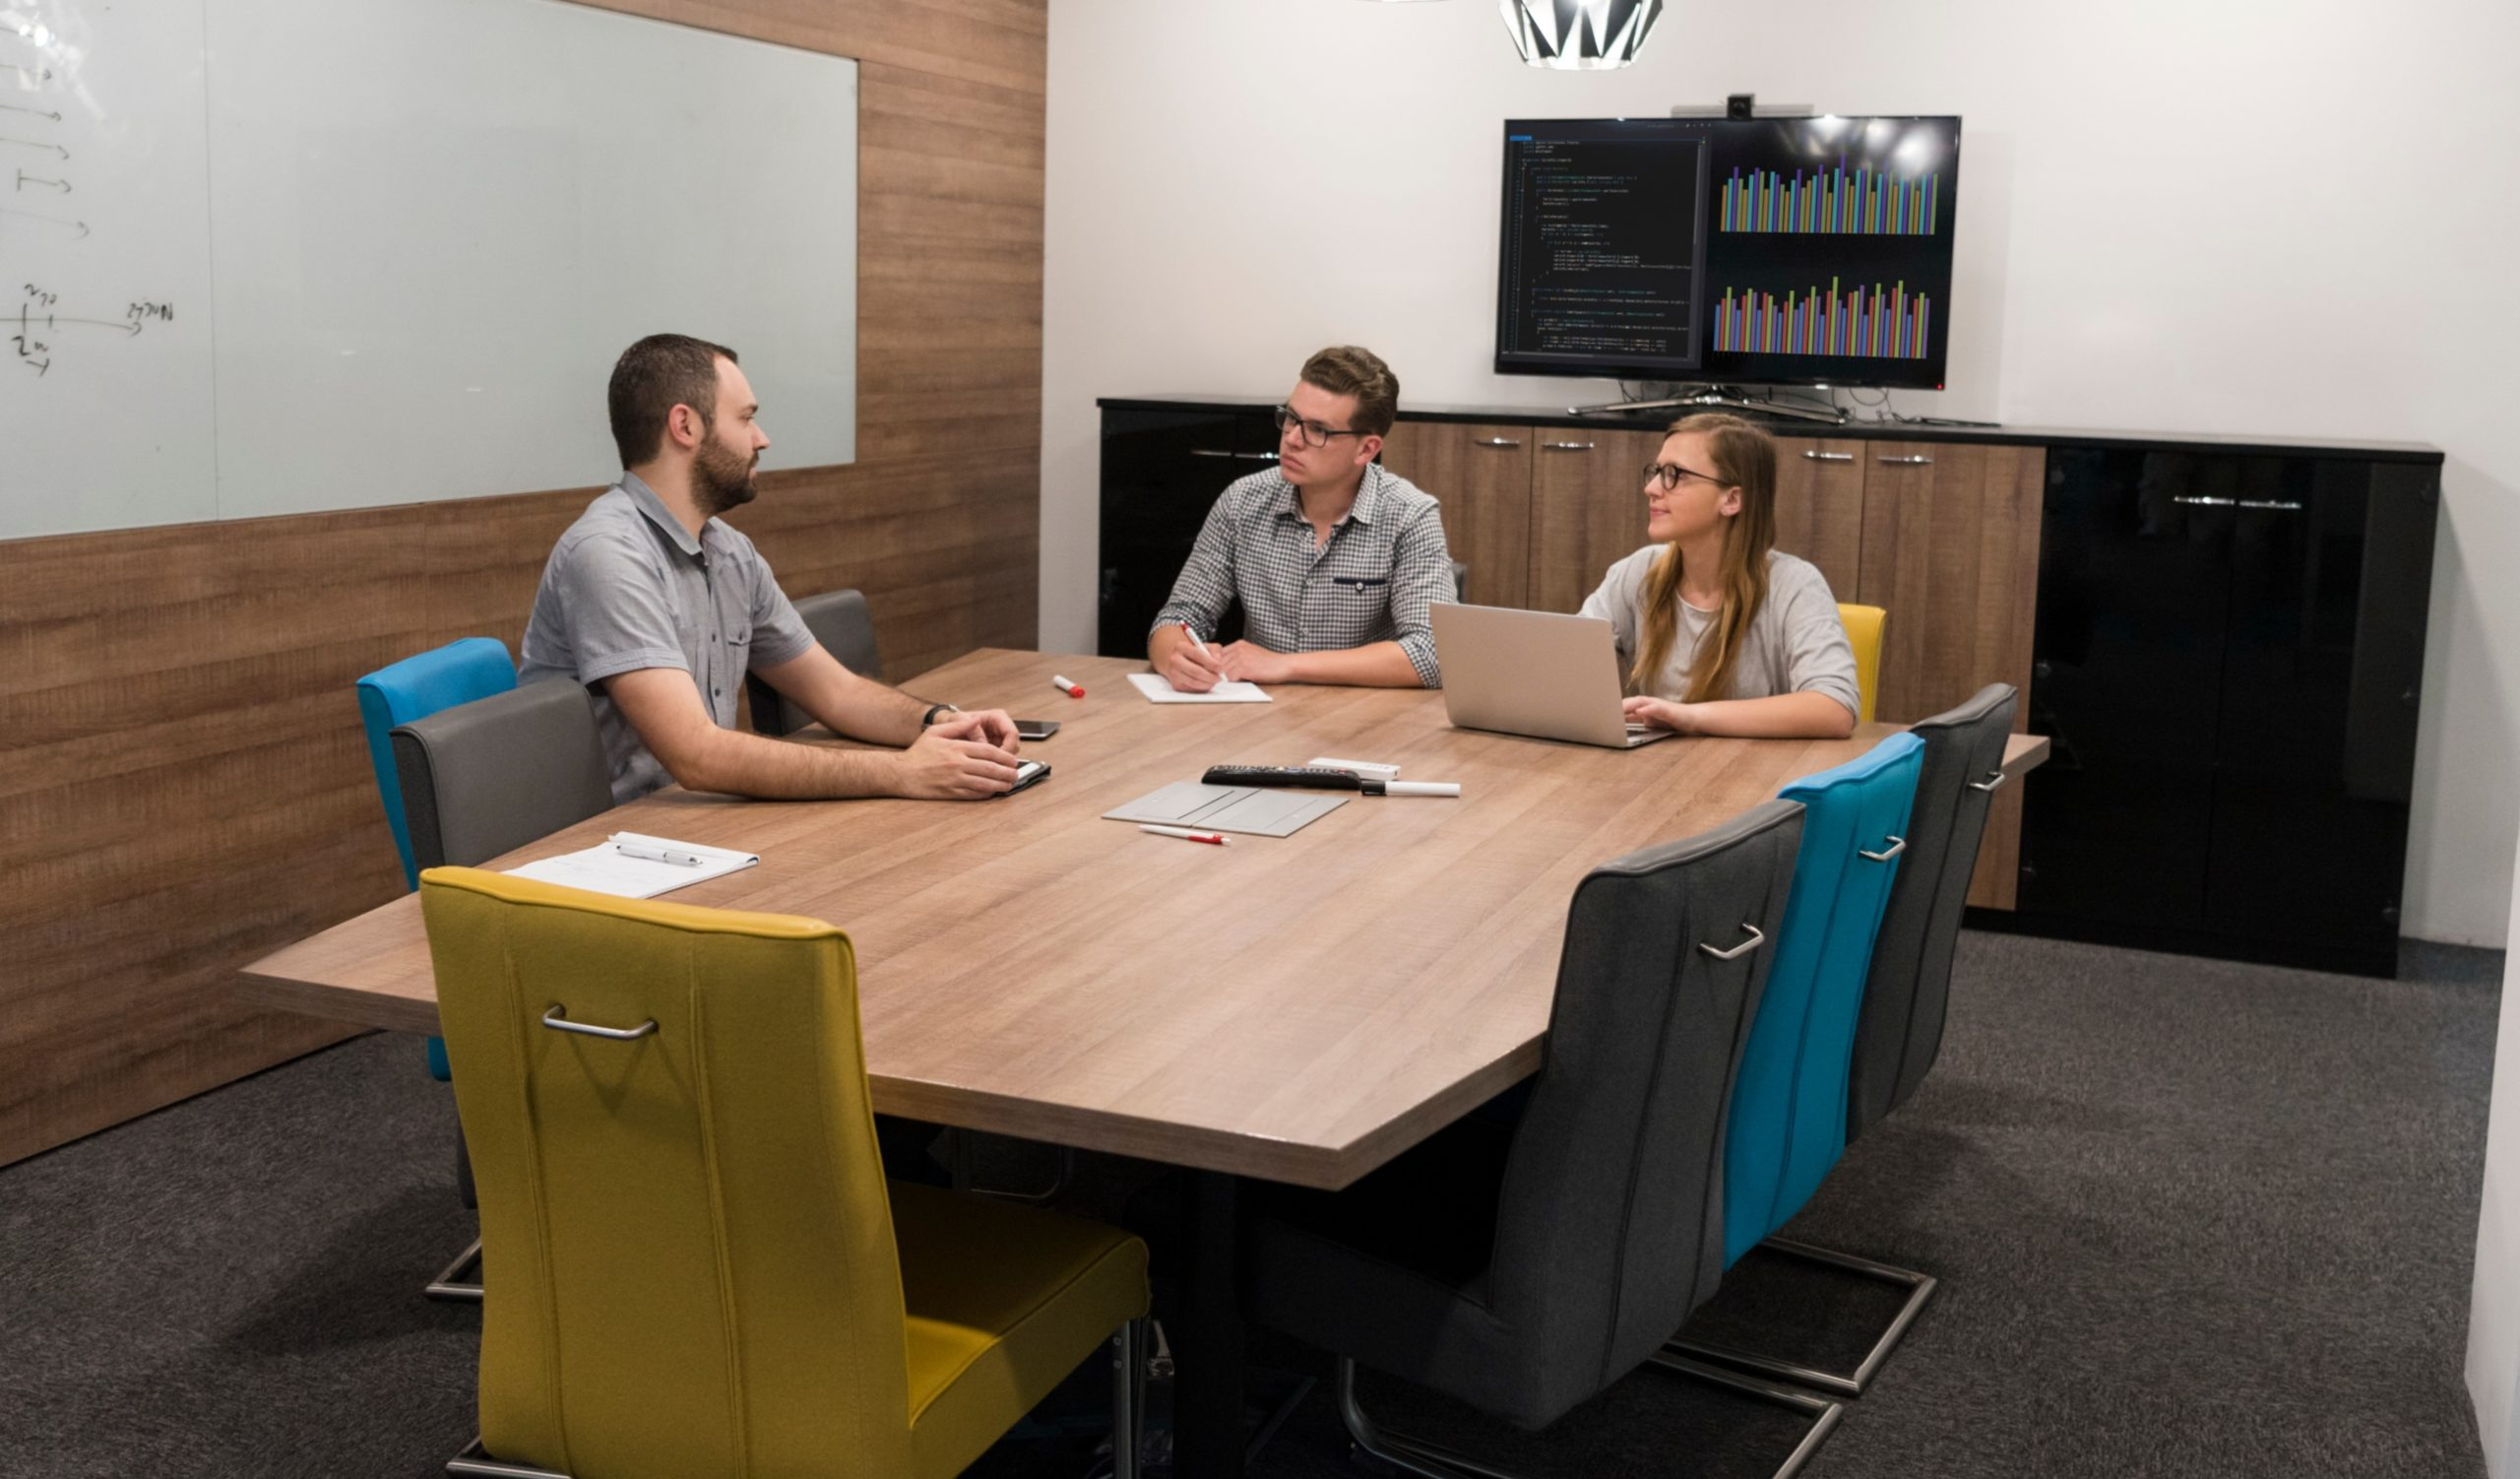 Three people sitting around a conference room table